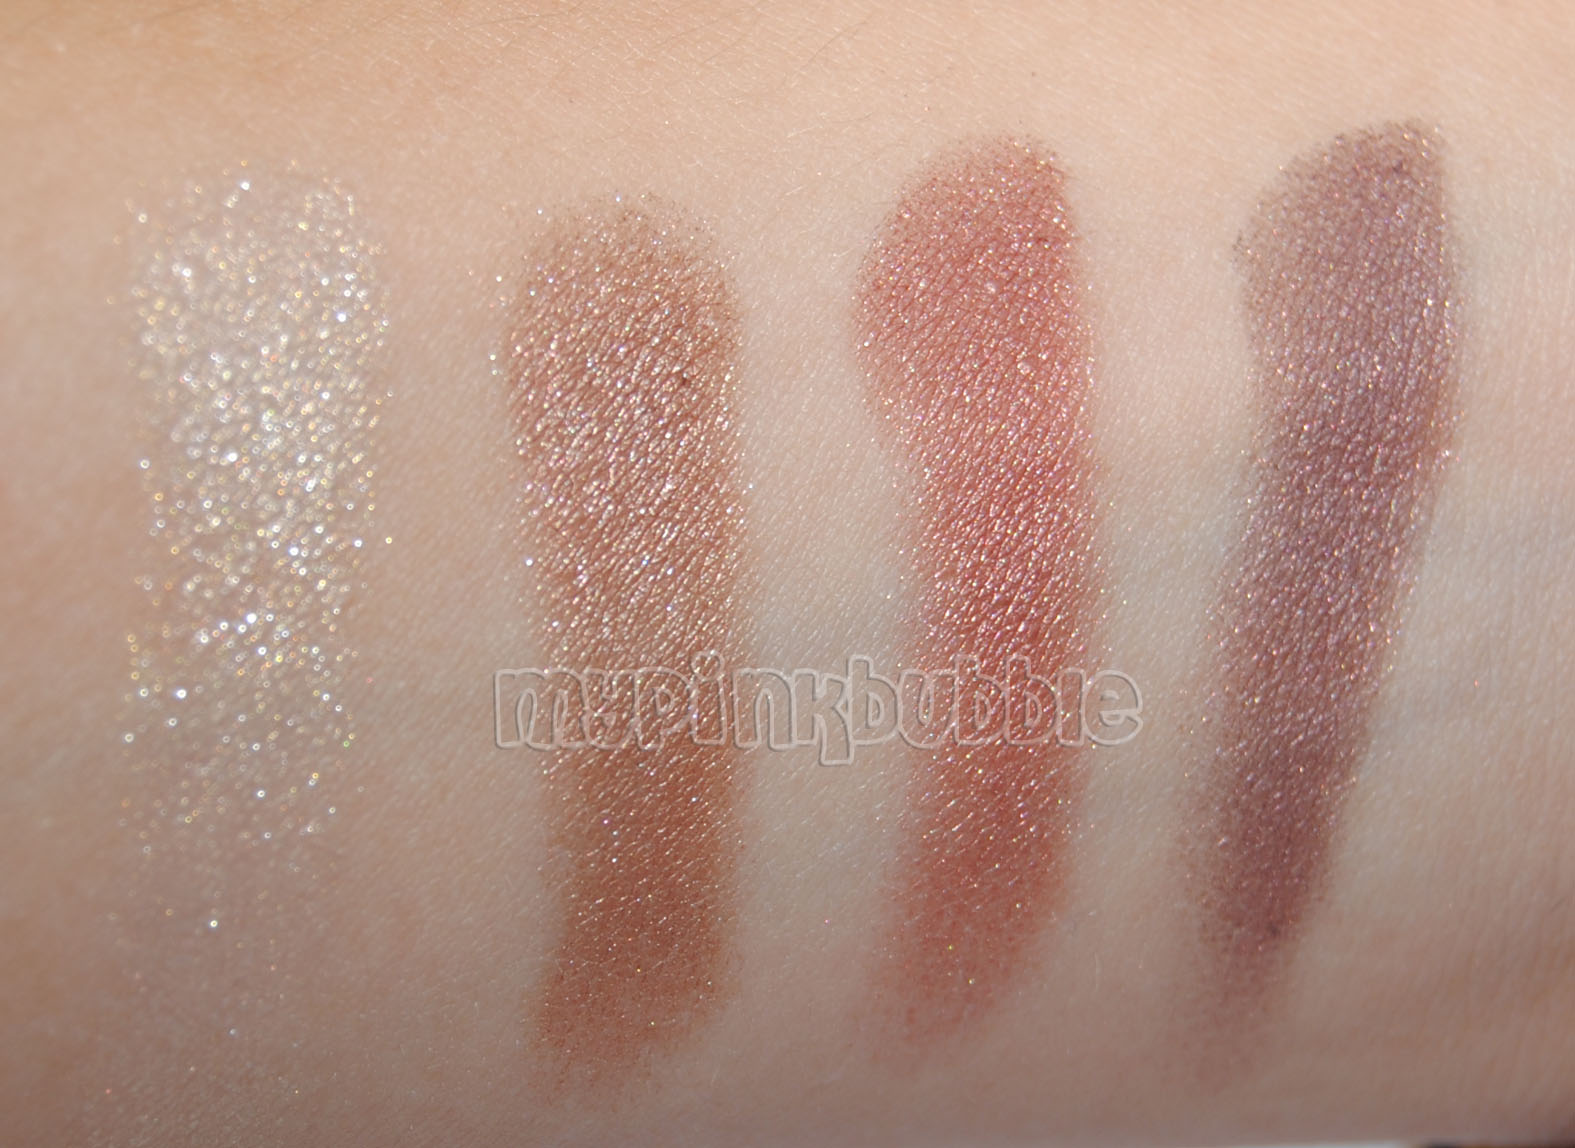 Isadora cuarteto 96 coffee & poetry swatch